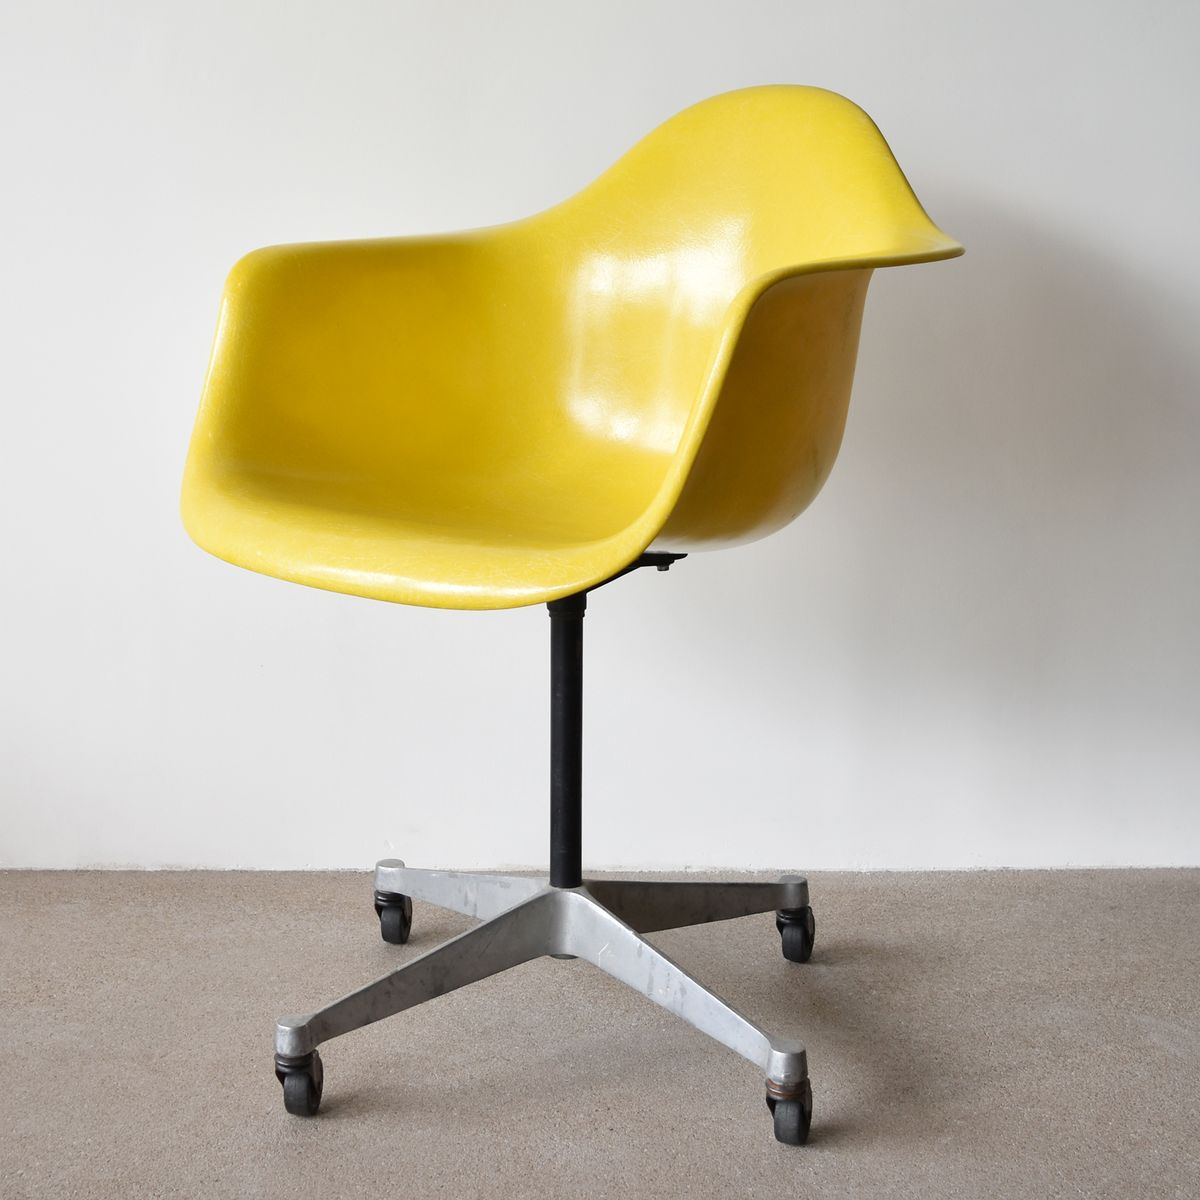 vintage pac chair in yellow by charles and ray eames for herman miller for sale at pamono. Black Bedroom Furniture Sets. Home Design Ideas